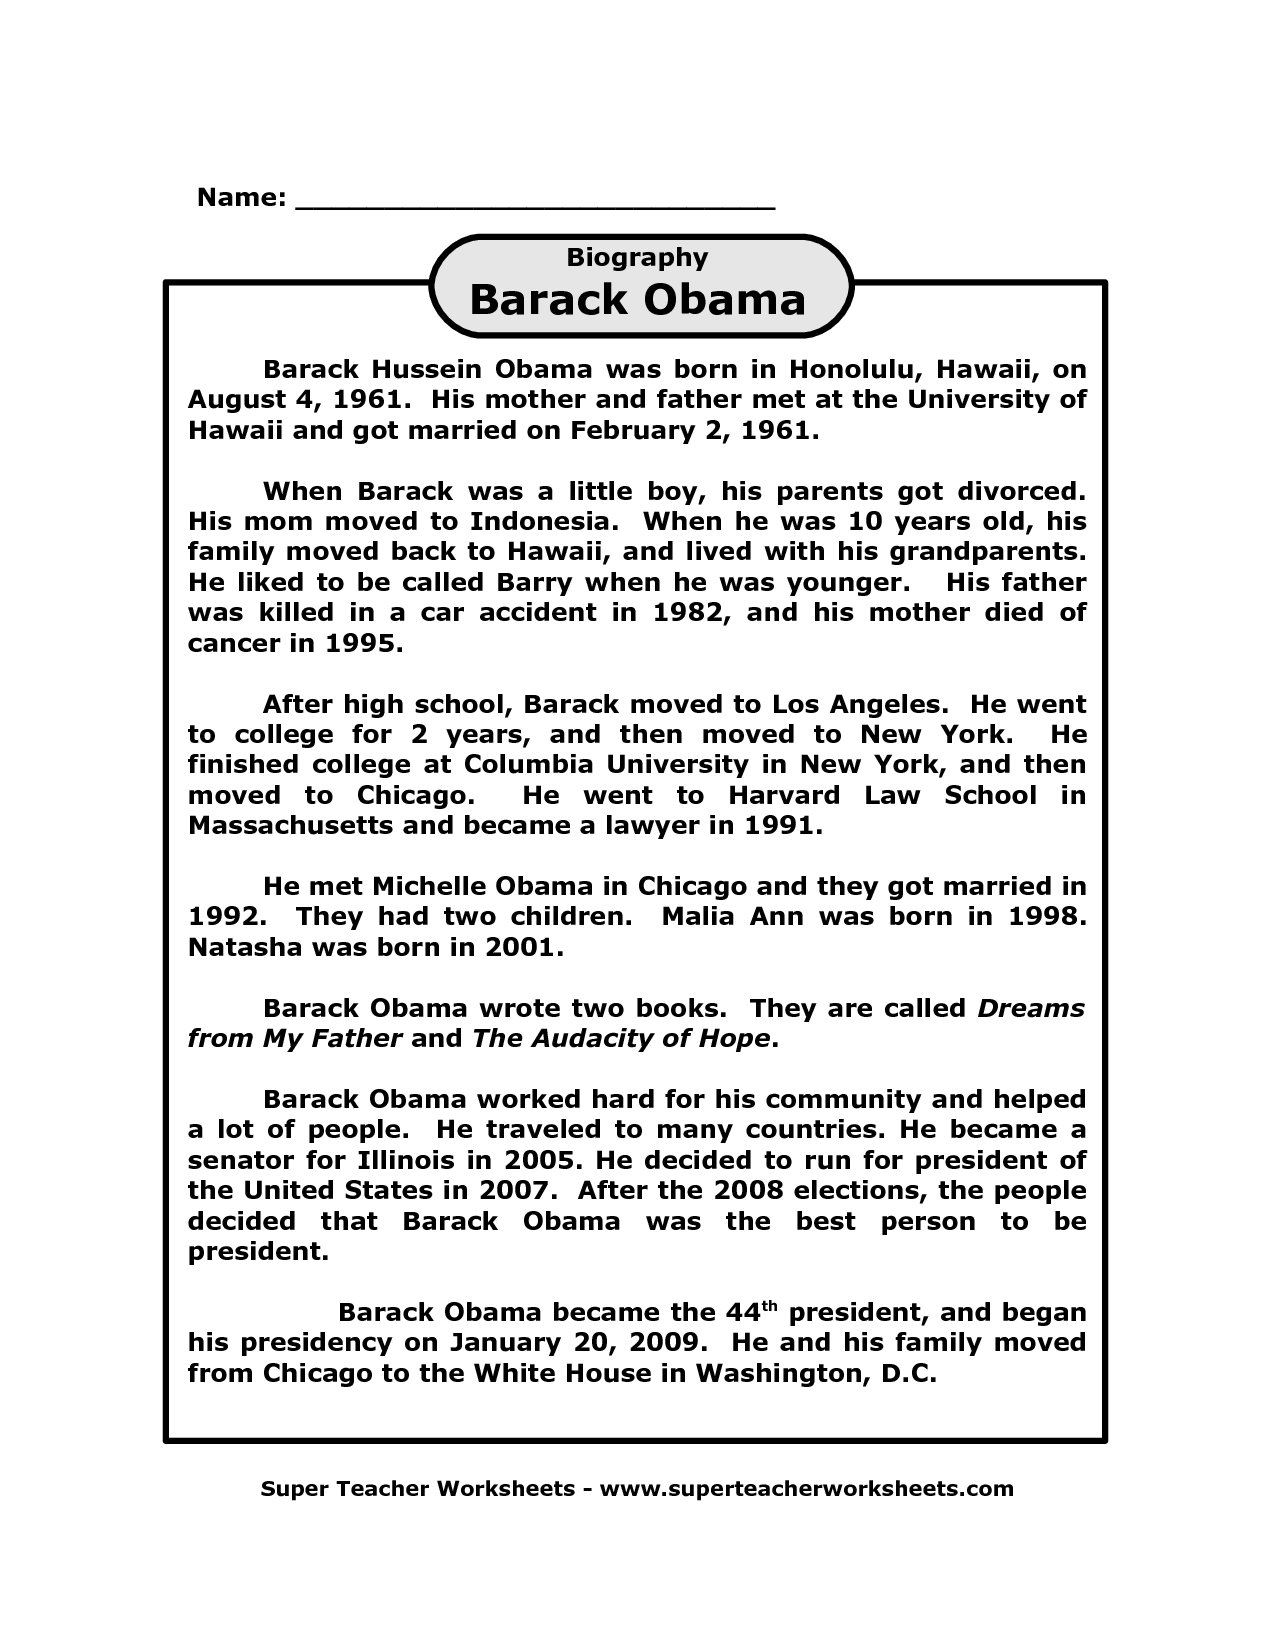 Barack Obama Biography Printable On Super Teacher Worksheets